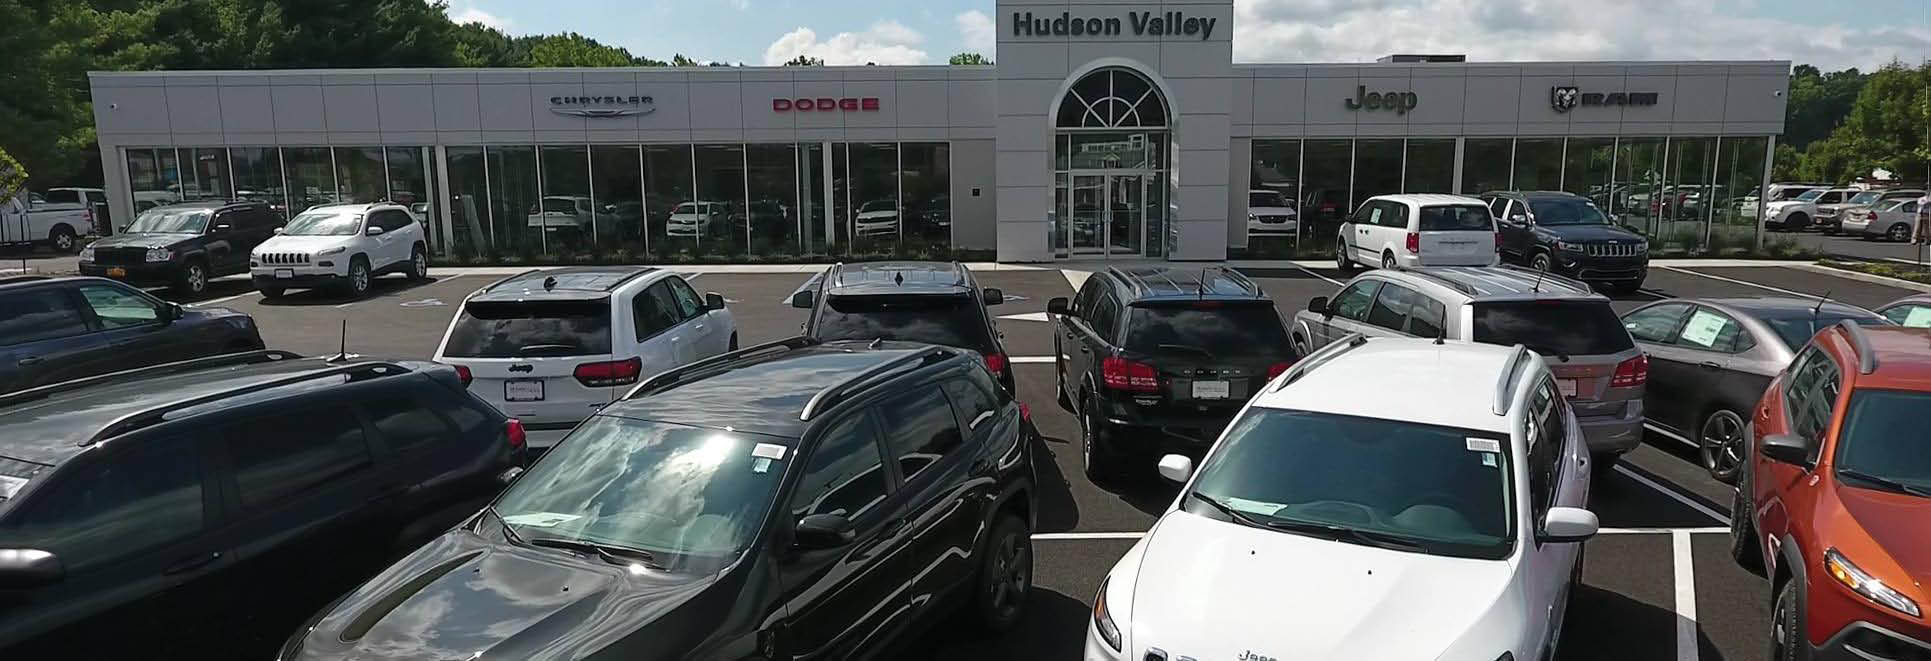 Hudson Valley Chrysler Dodge Jeep Ram in Newburgh, NY Banner ad